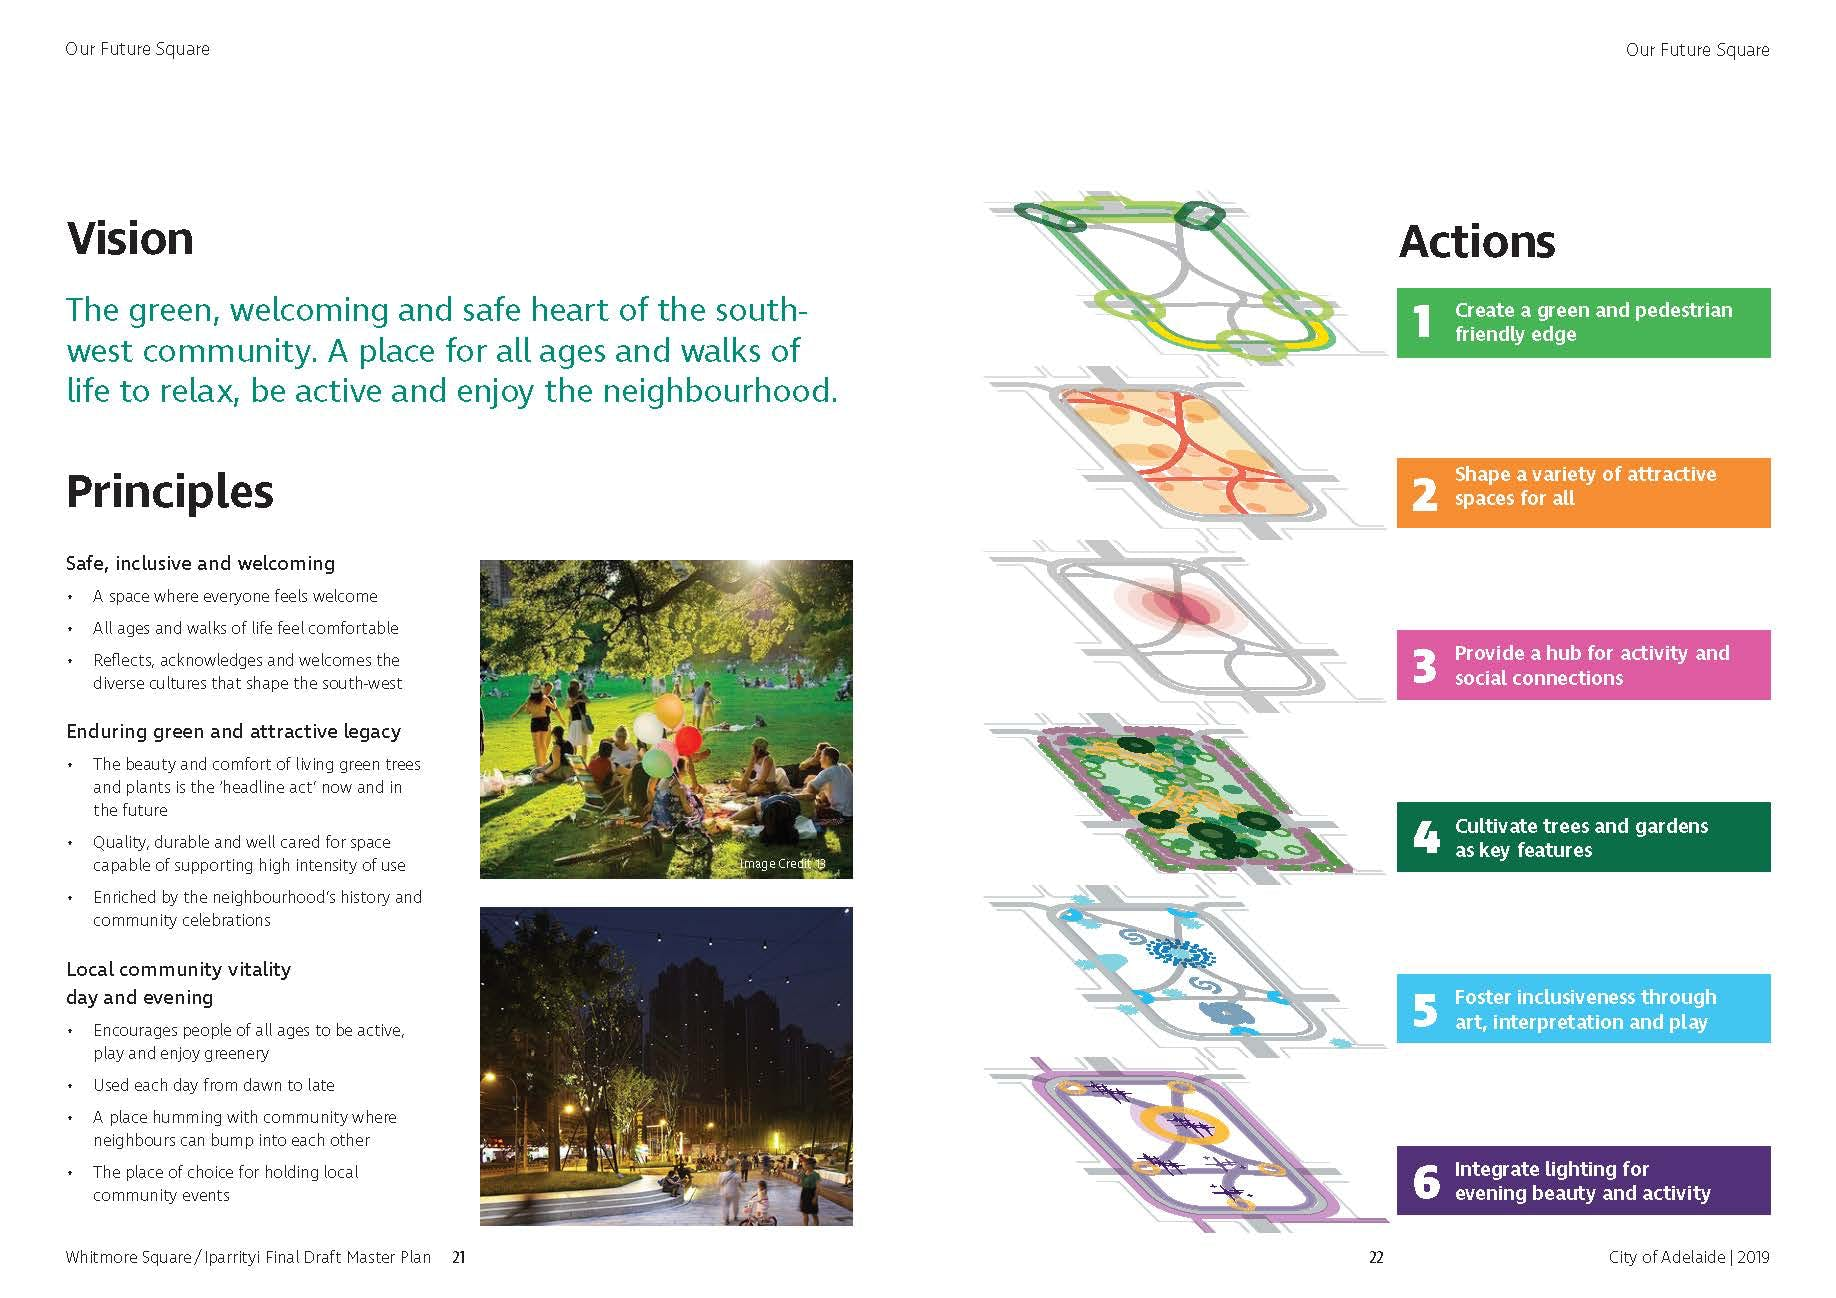 Vision, Principles and Actions summary